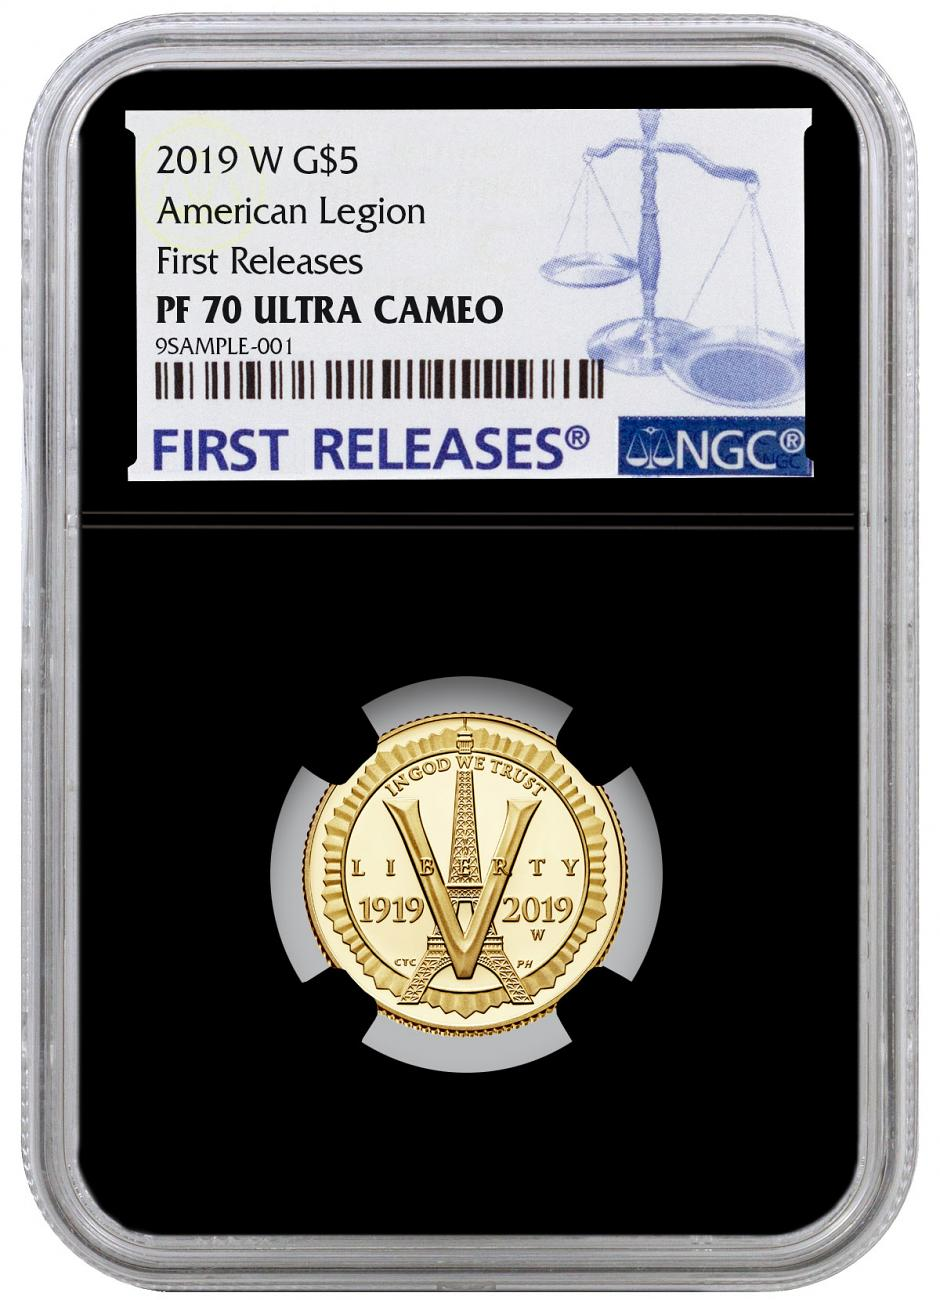 2019-W American Legion 100th Anniversary $5 Gold Commemorative Proof Coin NGC PF70 UC FR Black Core Holder